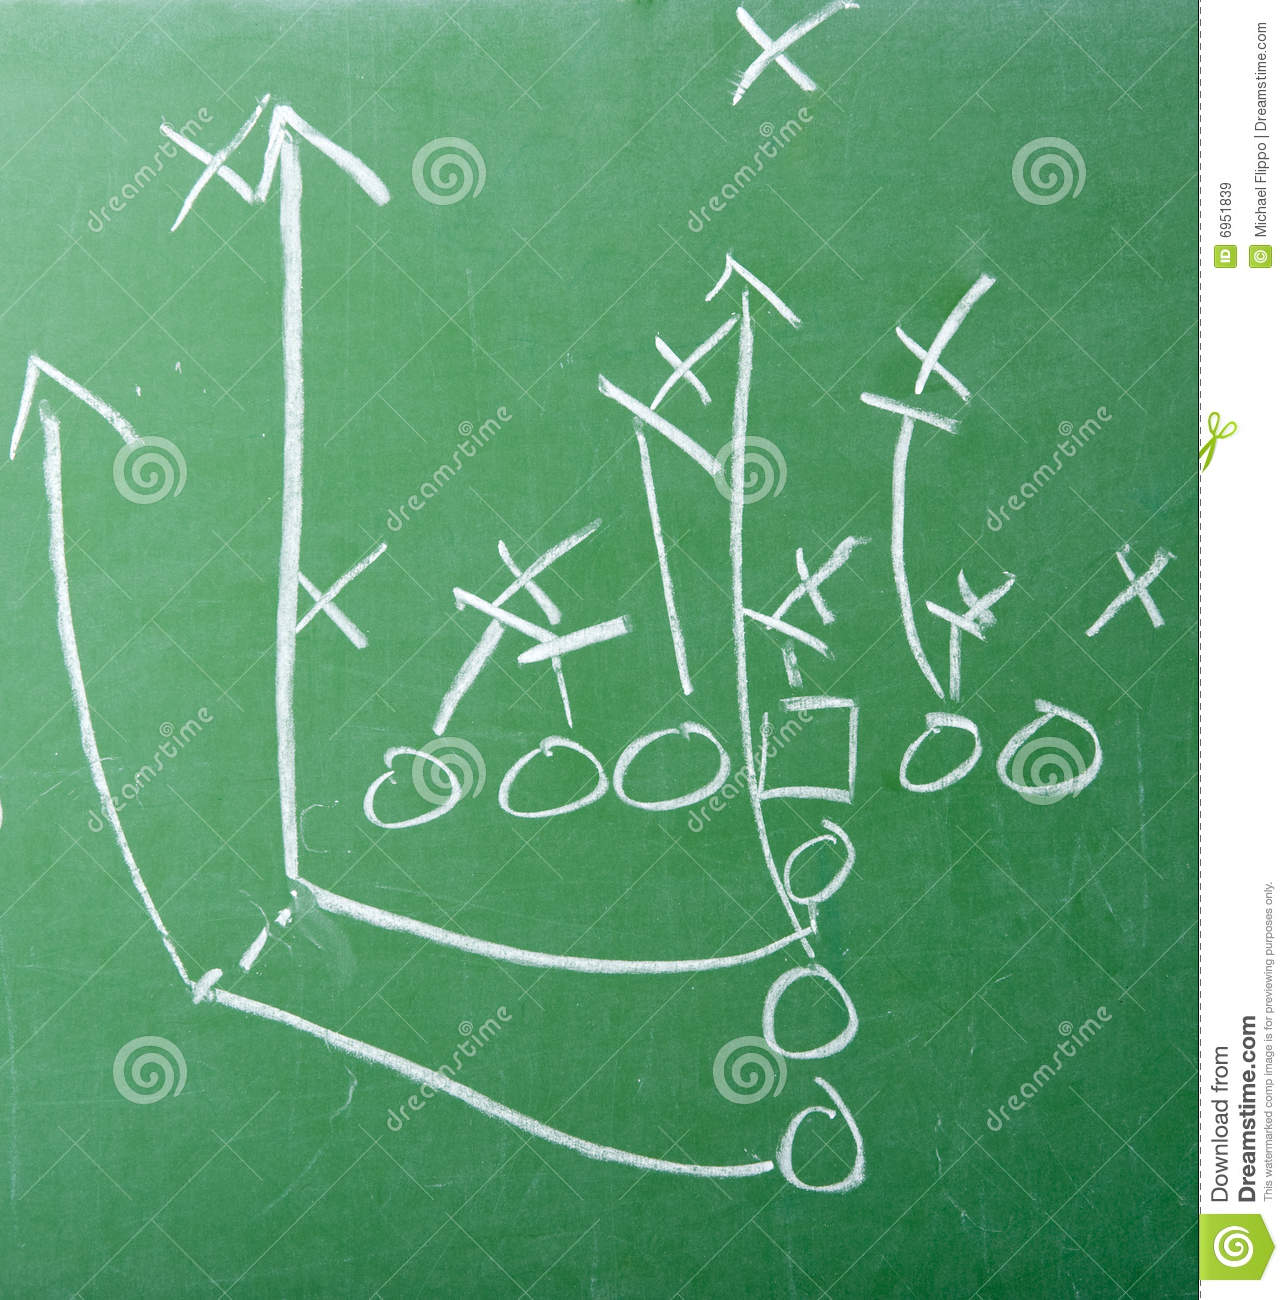 Football play diagram on chalkboard stock image image of football play diagram on chalkboard royalty free stock images pooptronica Images